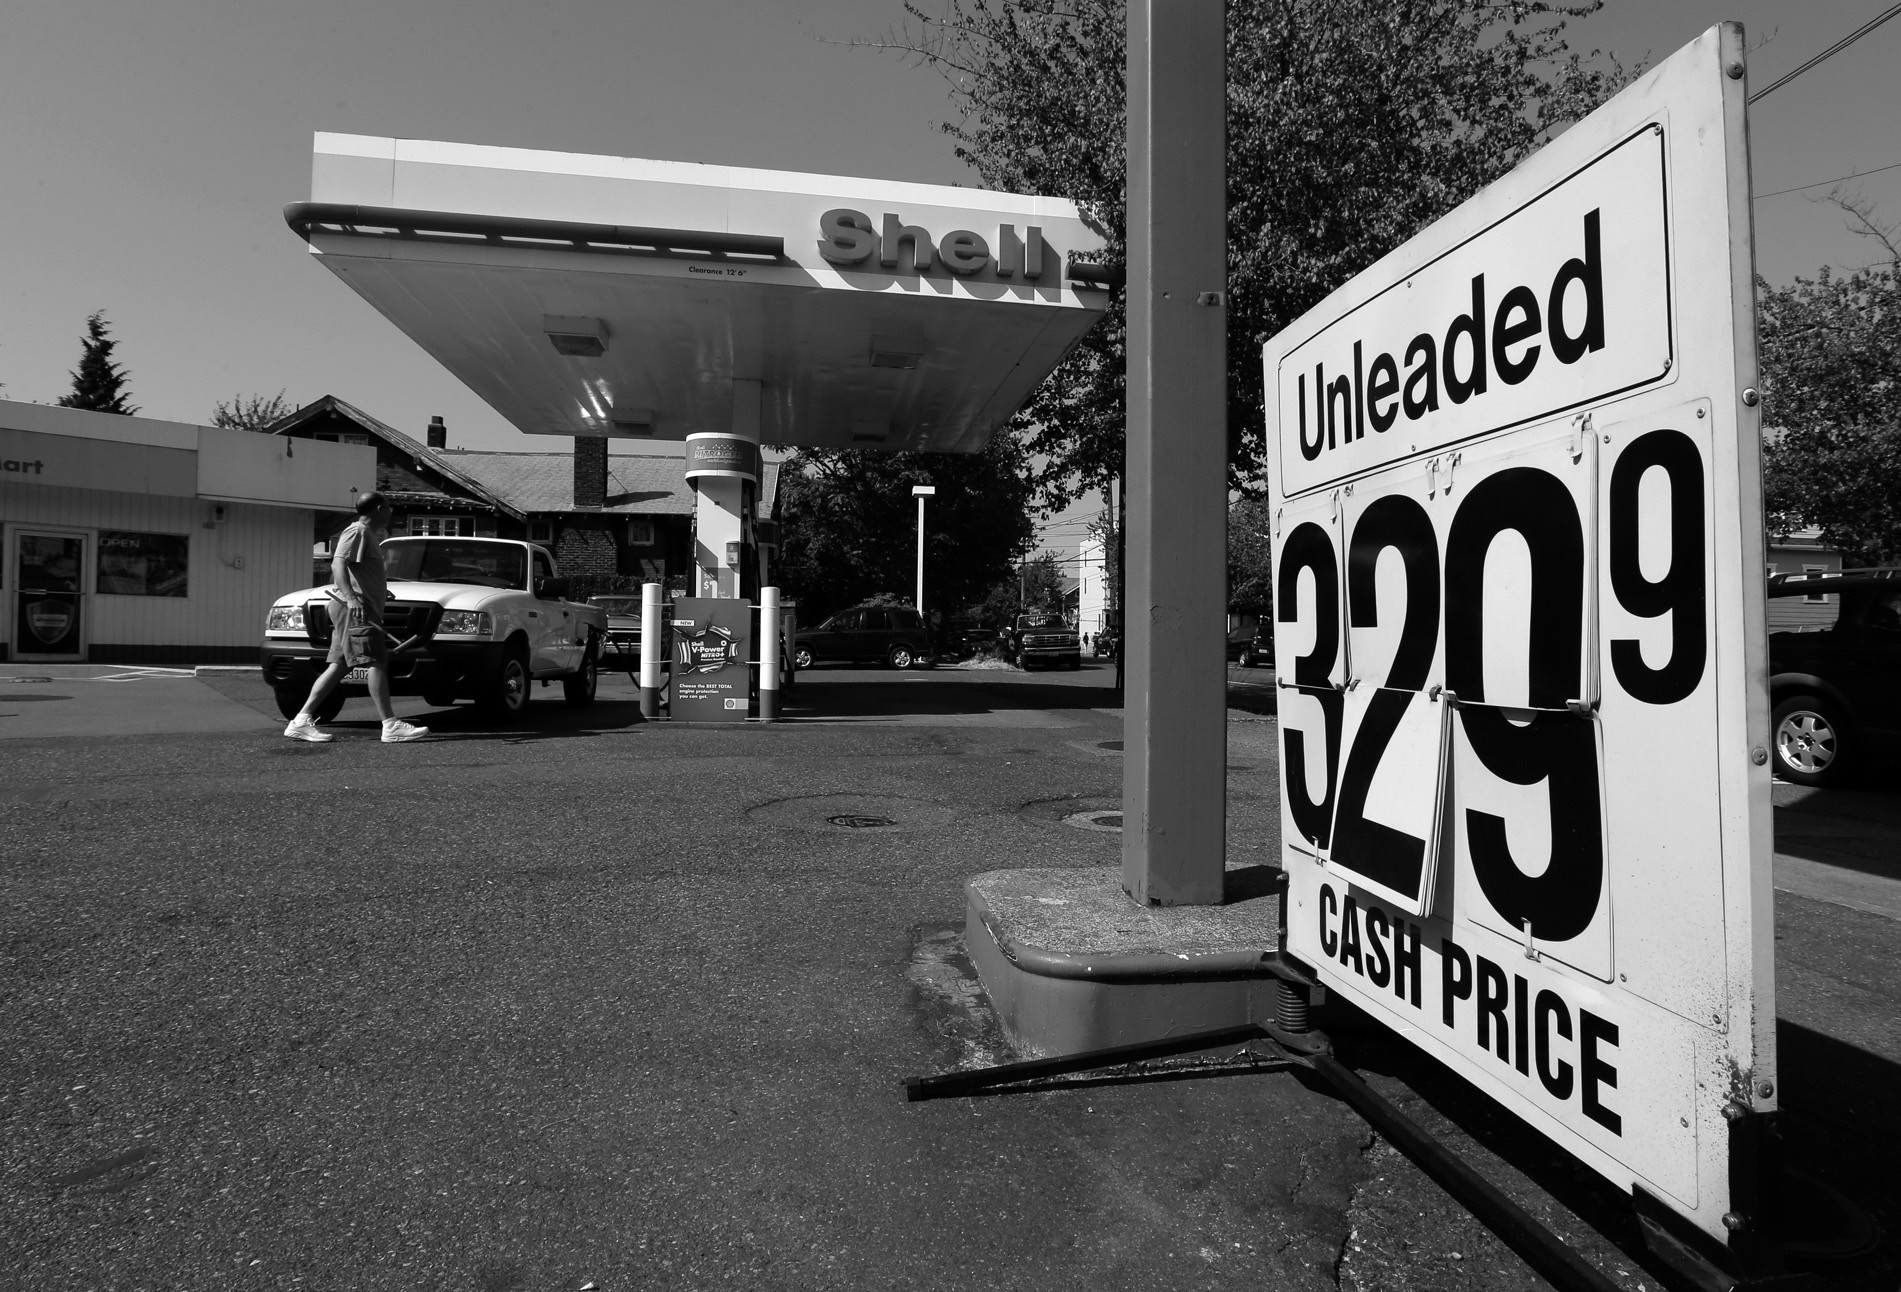 In this Aug. 13 photo, the cash price for gasoline is shown on a changeable sign at a gas station in Seattle. Washington state recently approved a 16-year, $16 billion transportation plan that raises fuel taxes, vehicle fees and bonding.